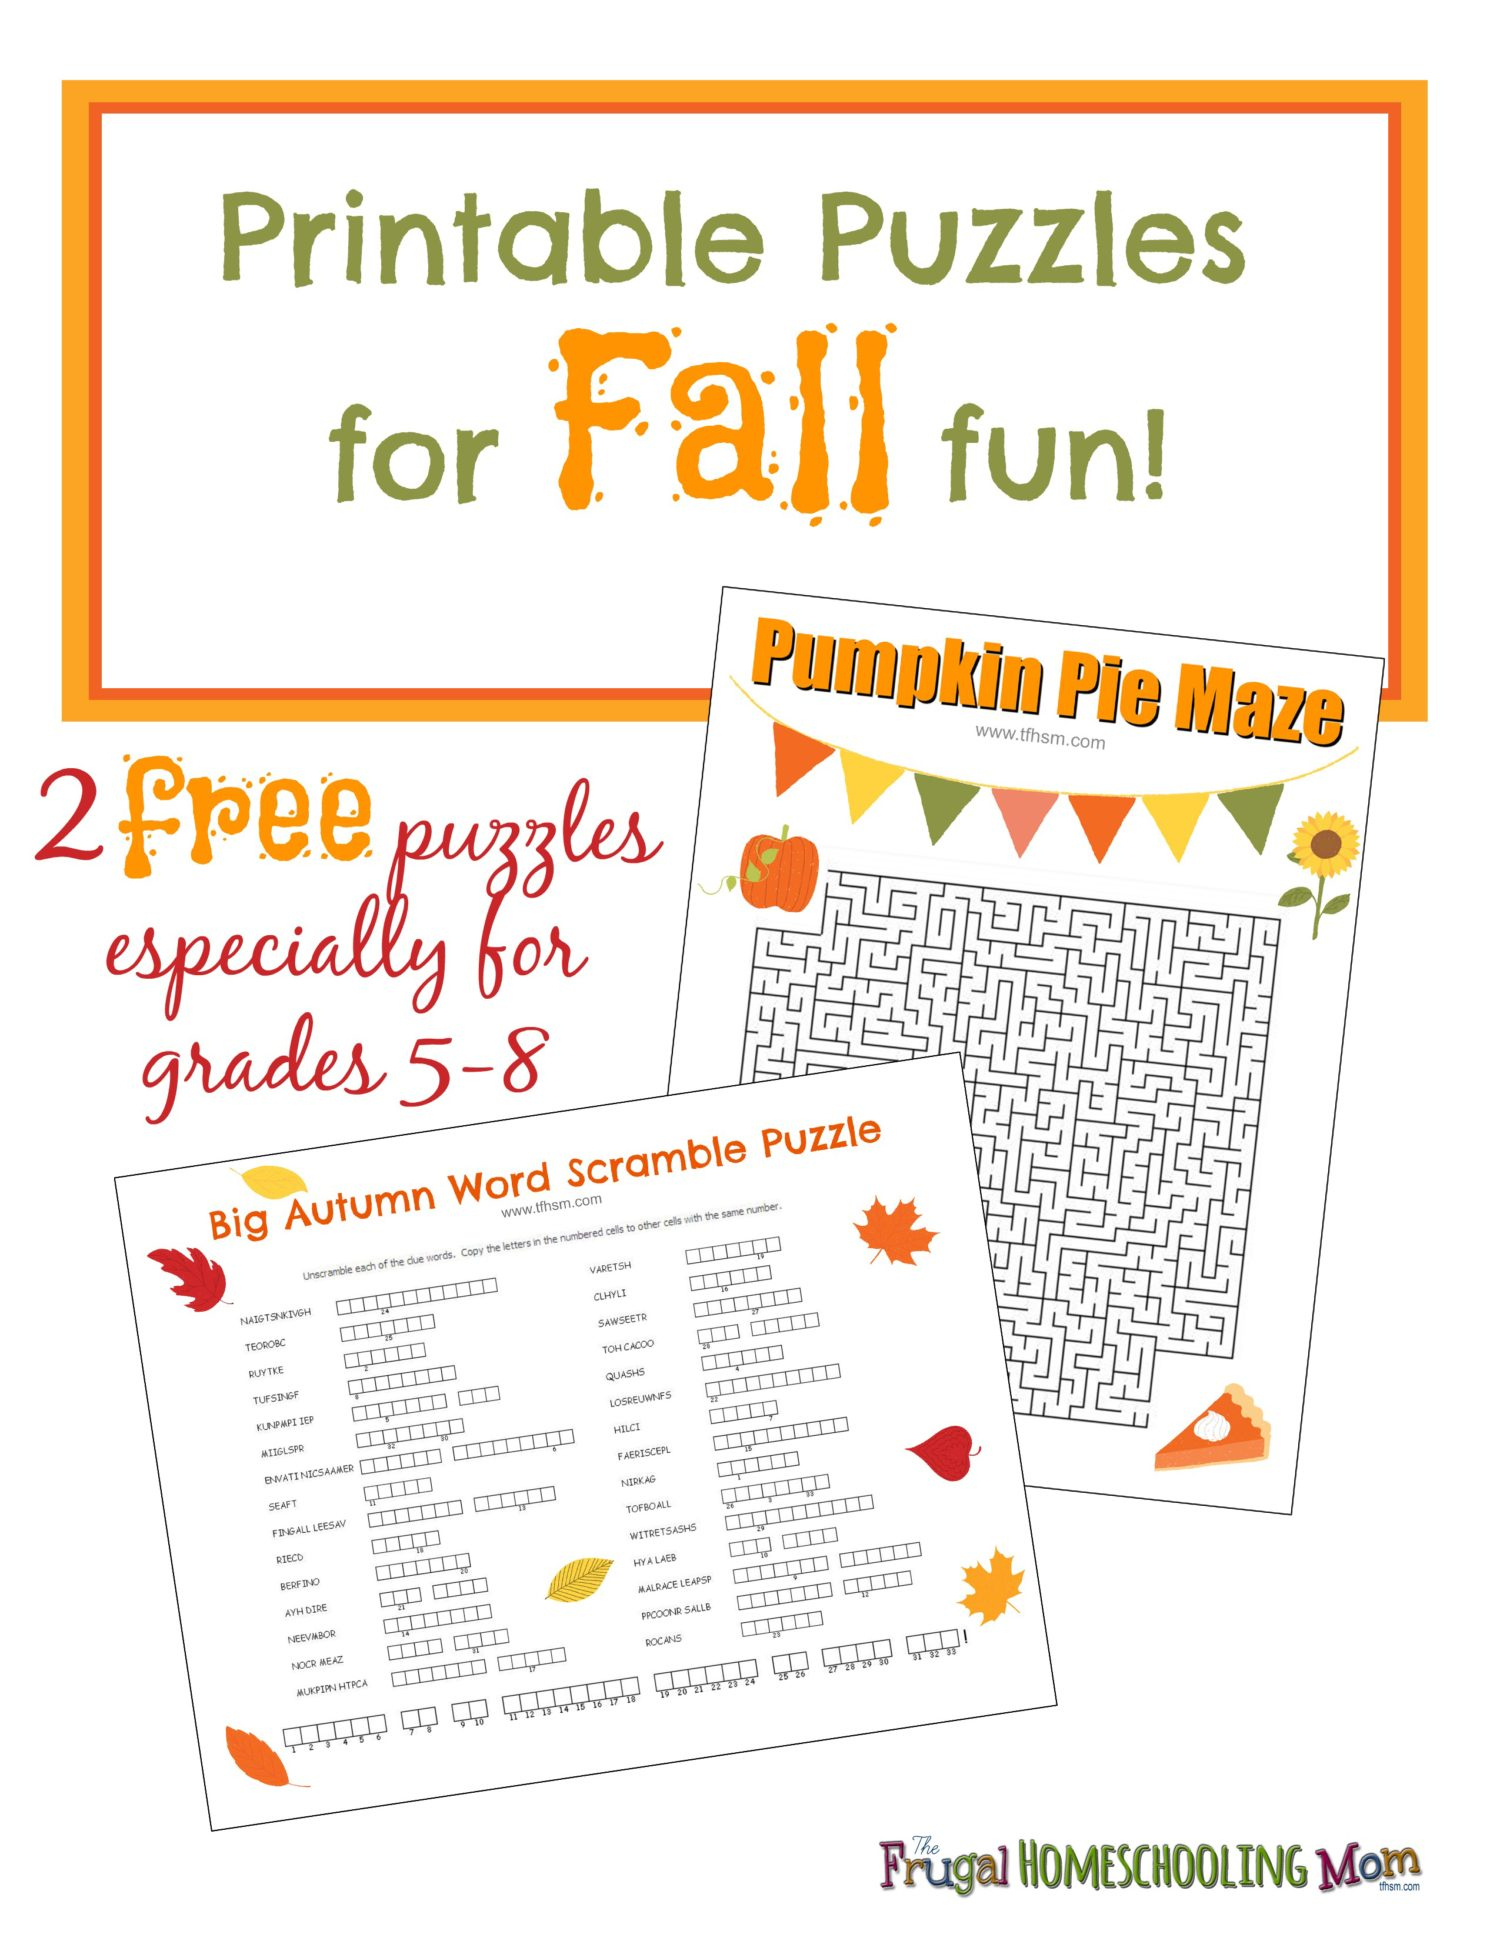 Free Fall Printable Puzzles – The Frugal Homeschooling Mom Aka Tfhsm - Printable Autumn Puzzles